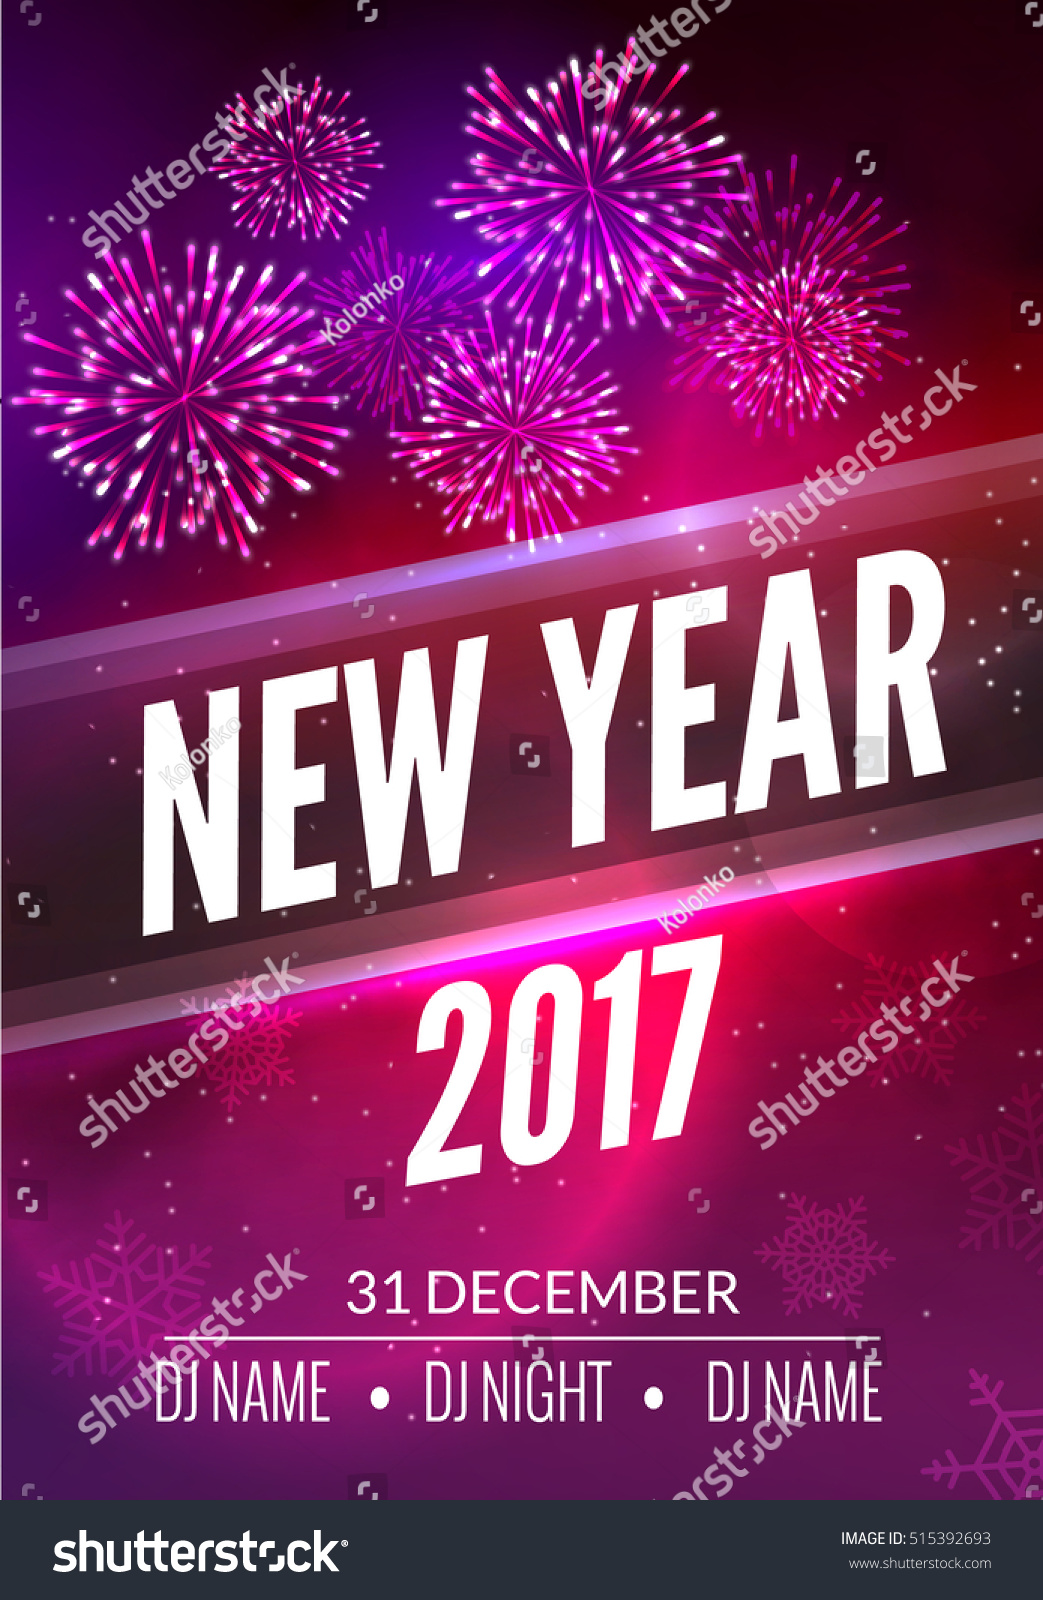 New Year 2017 Party Poster Design Stock Vector 515392693 ...